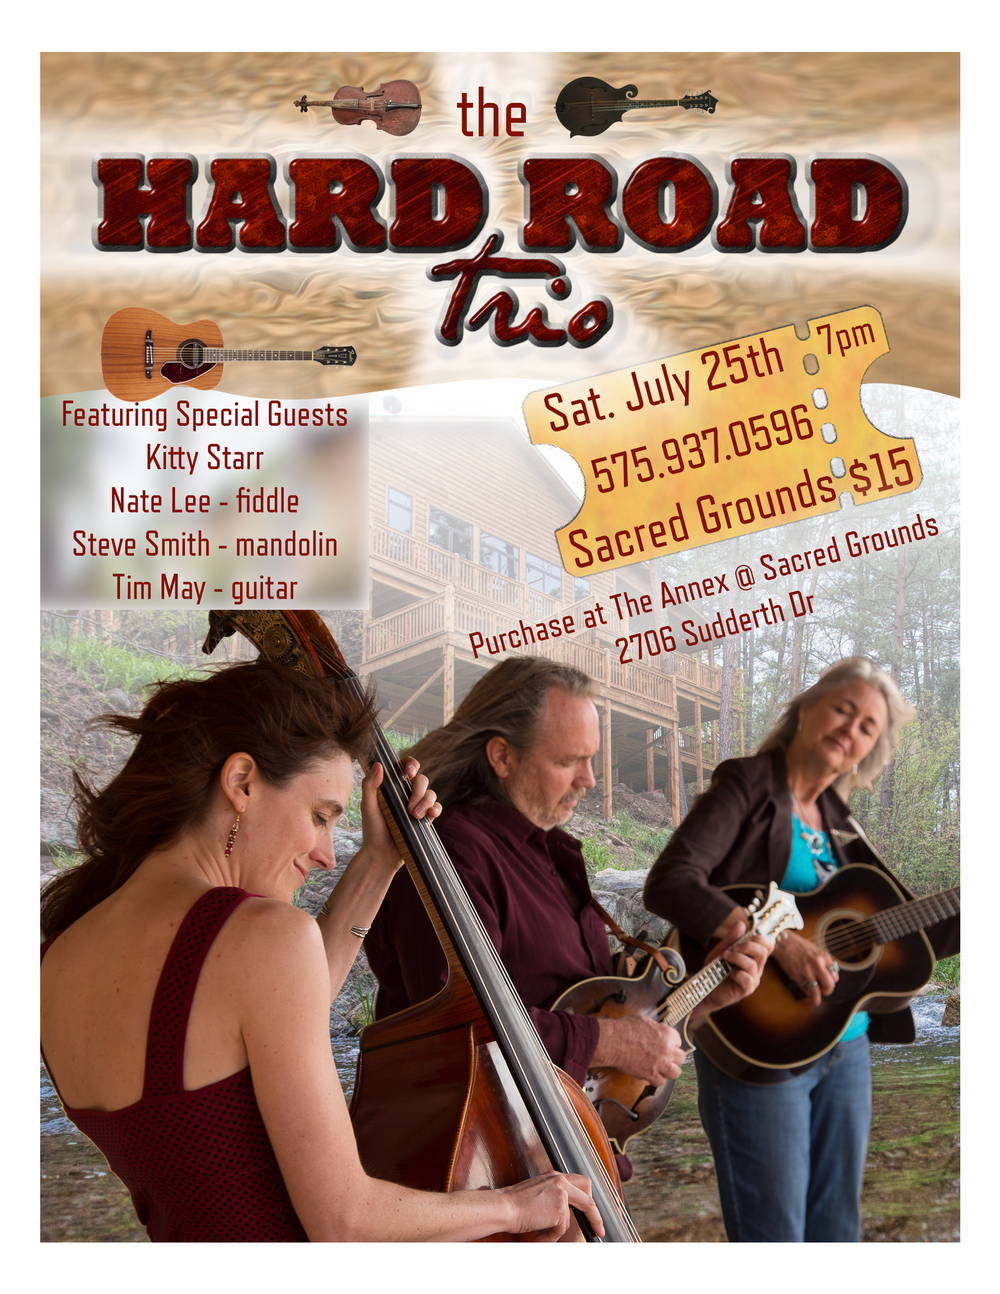 the hard road trio poster